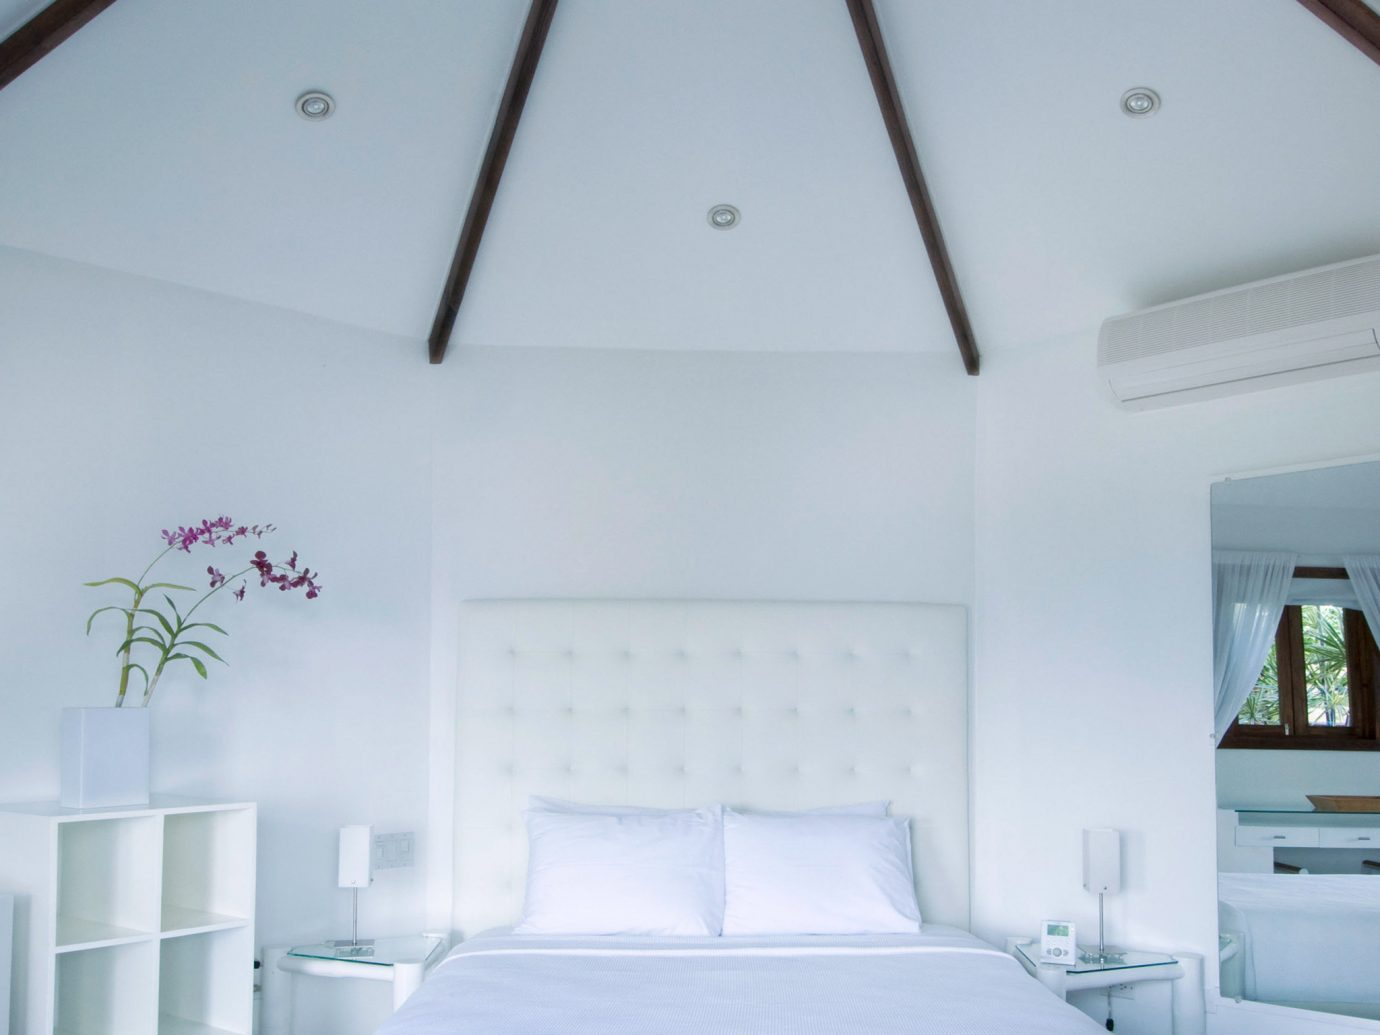 Bedroom Boutique Hotels Tropical indoor wall room property ceiling interior design white daylighting Design cottage estate furniture